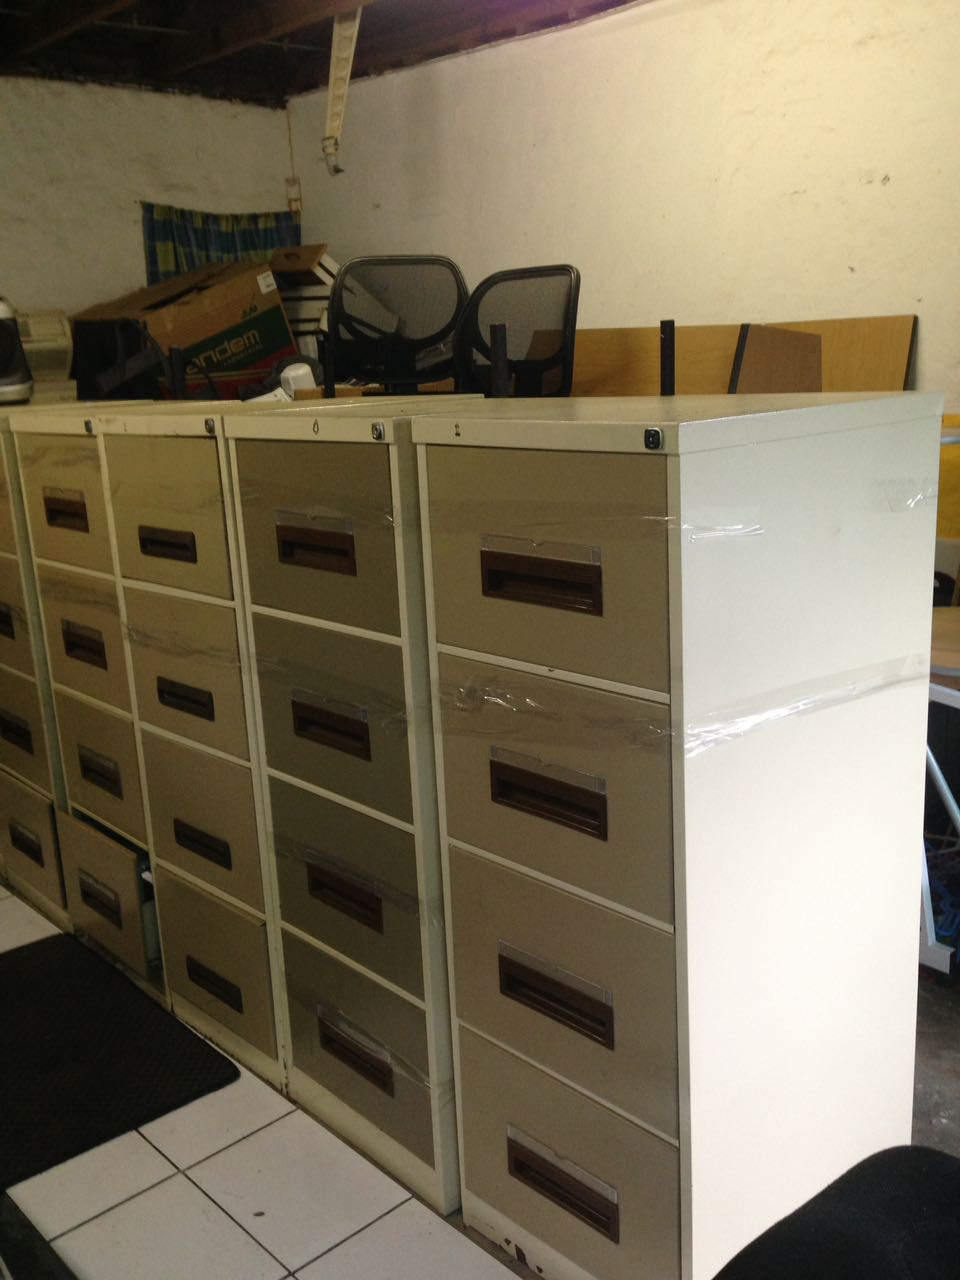 Garage sale office furniture, kitchen appliances and other consumables (BARGAIN)